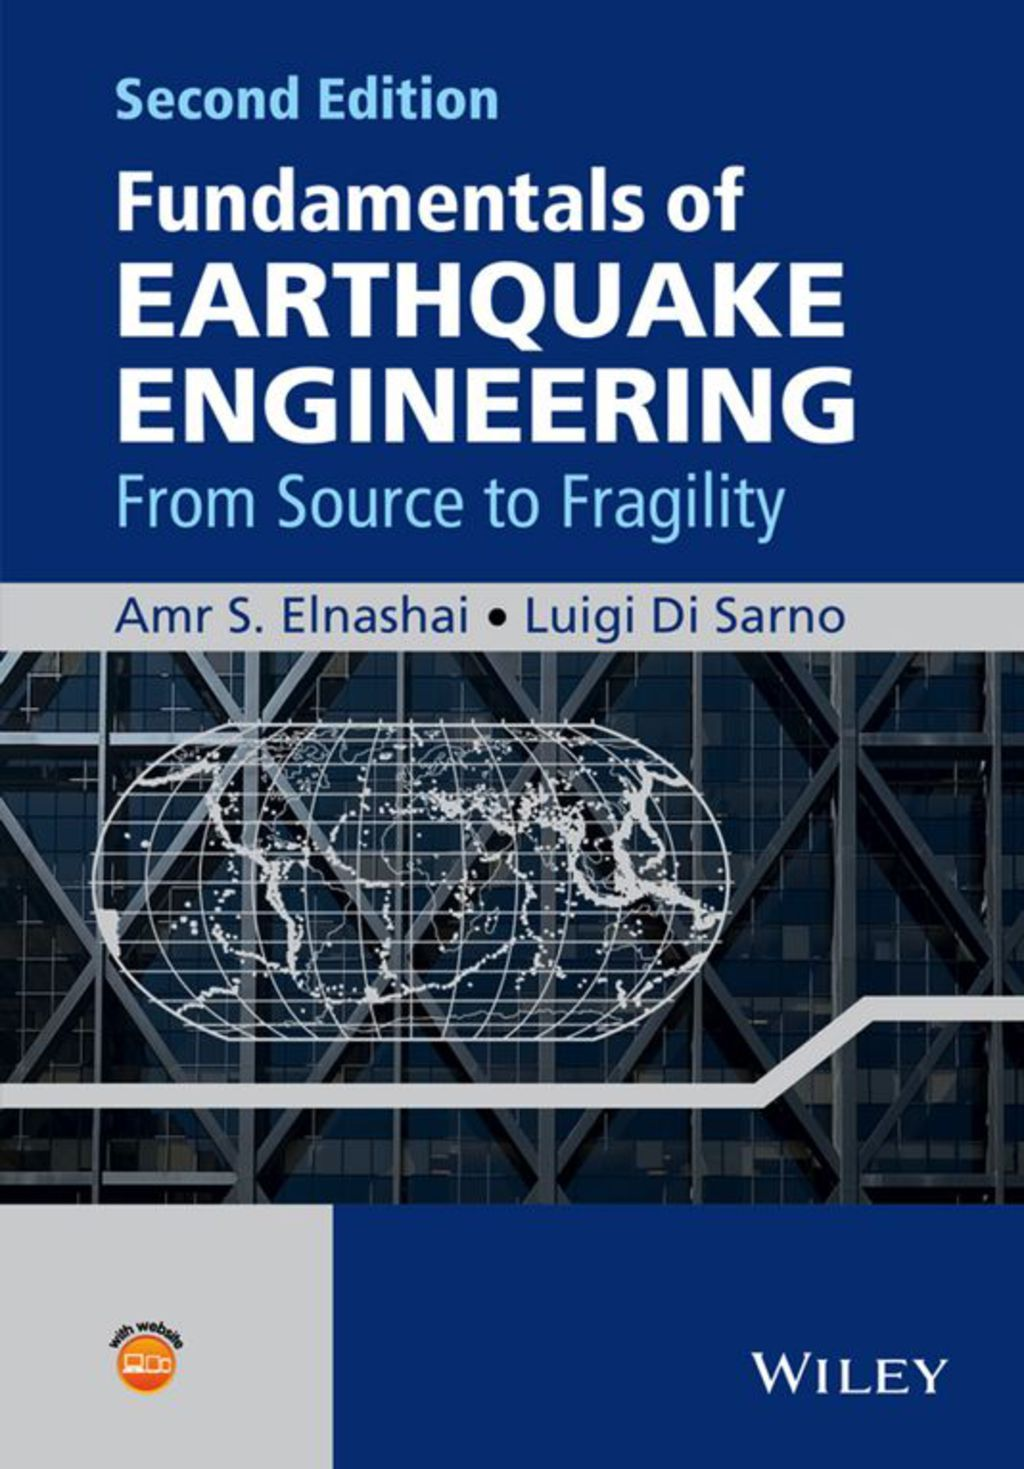 Idea Casa Full Sarno fundamentals of earthquake engineering: from source to